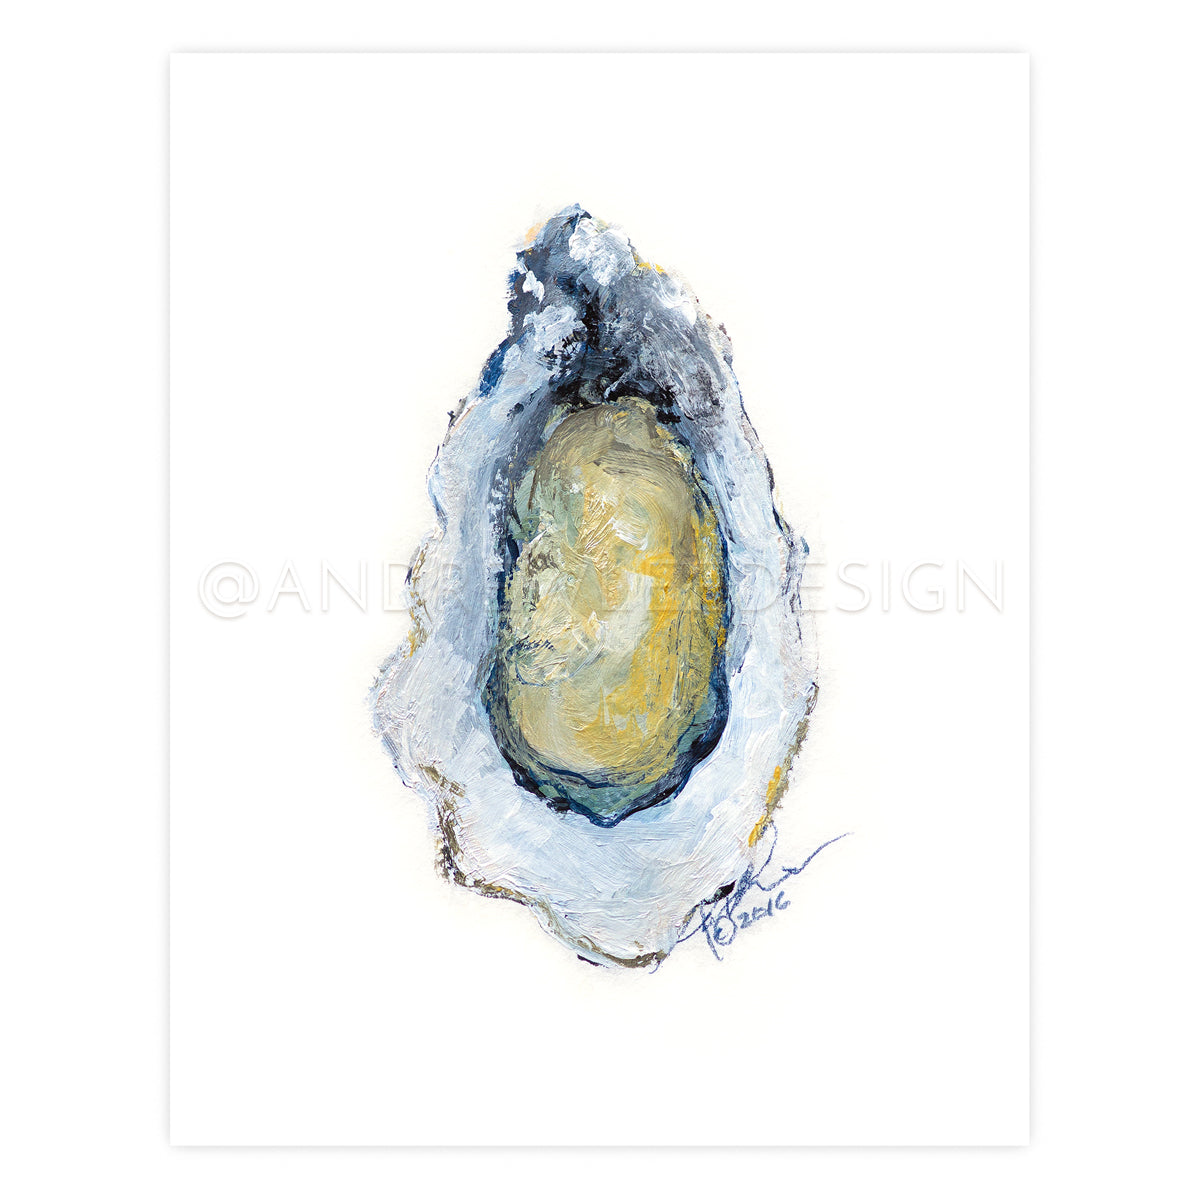 "Oyster in iridescents, 11x14"" Print"